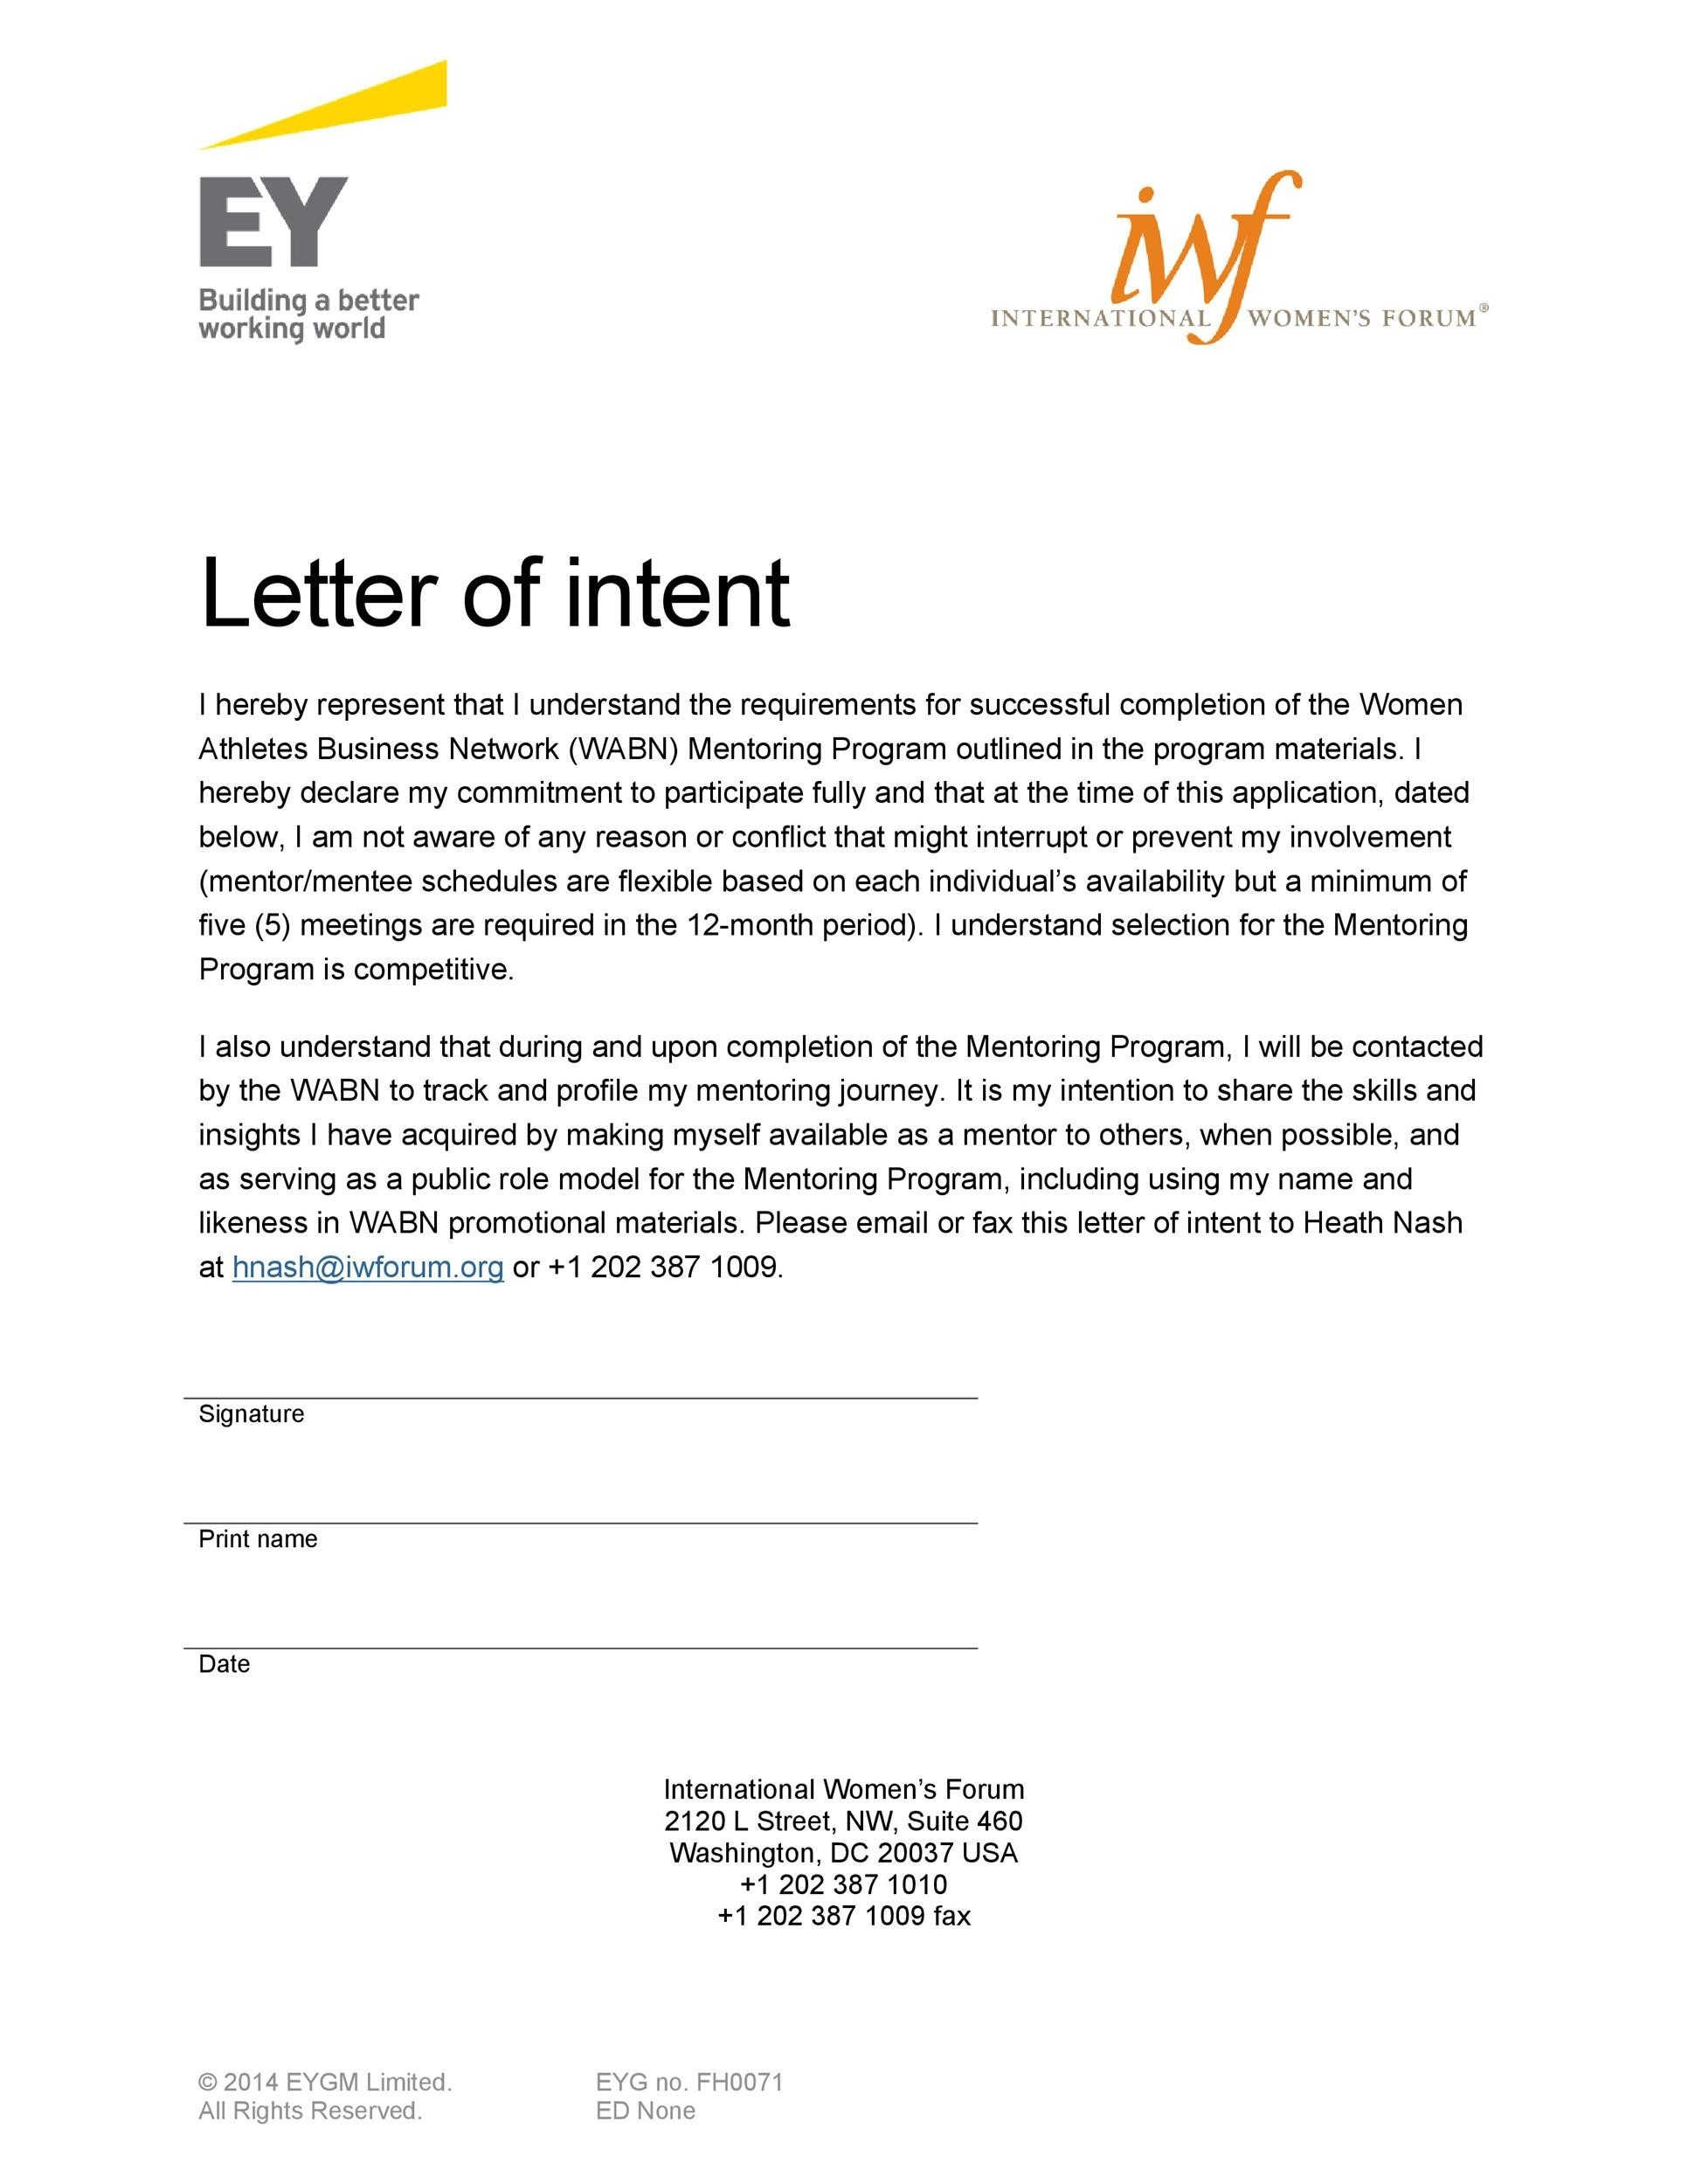 Letter Of Intent Sponsorship Sample